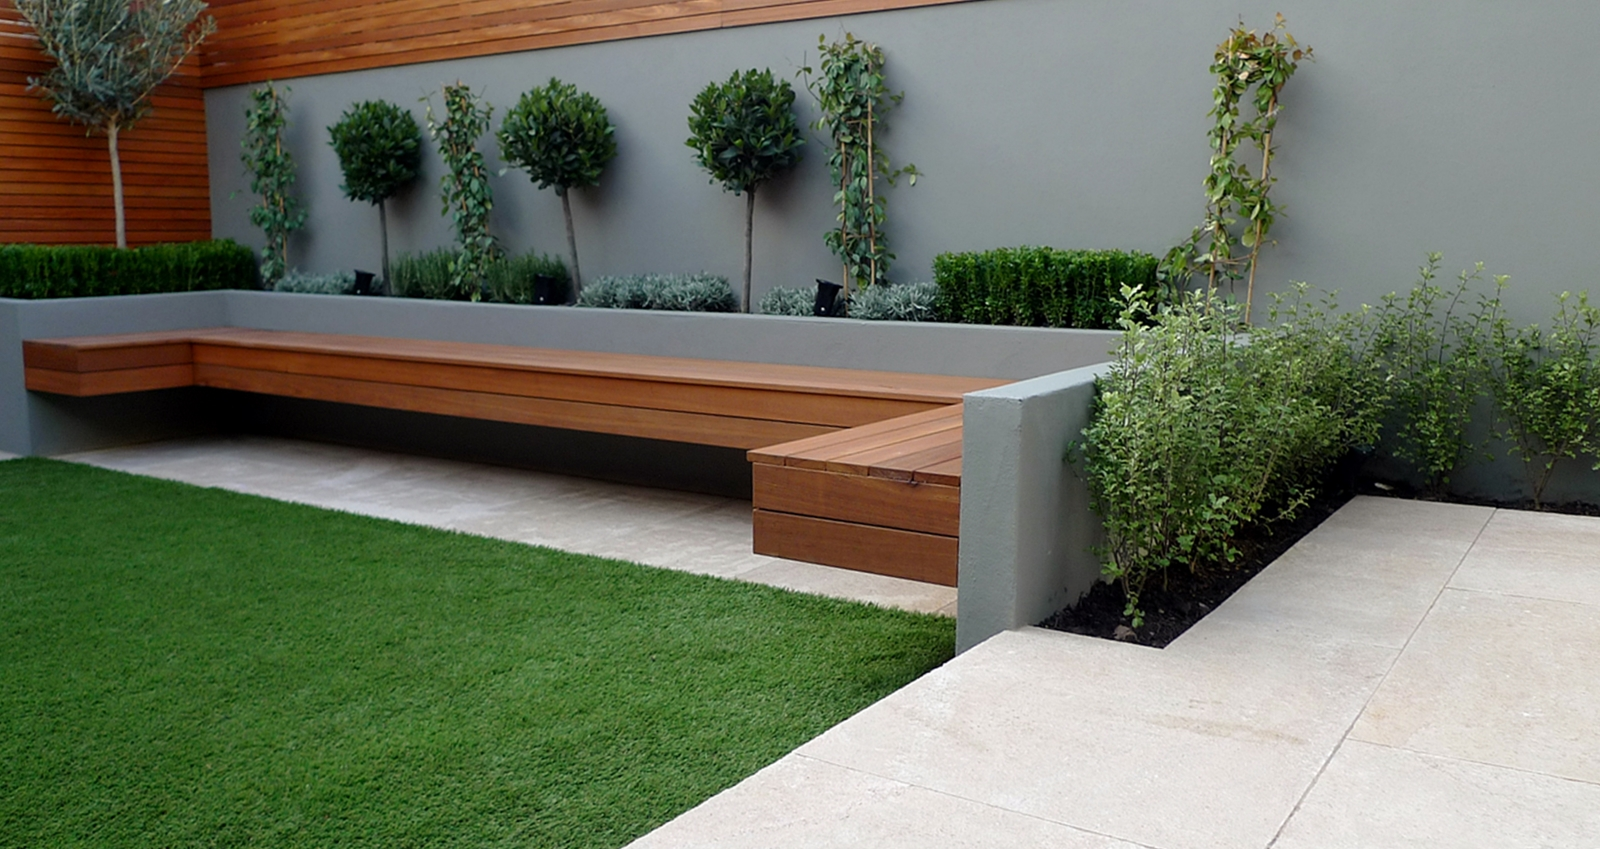 Courtyard london garden design for Paved garden designs